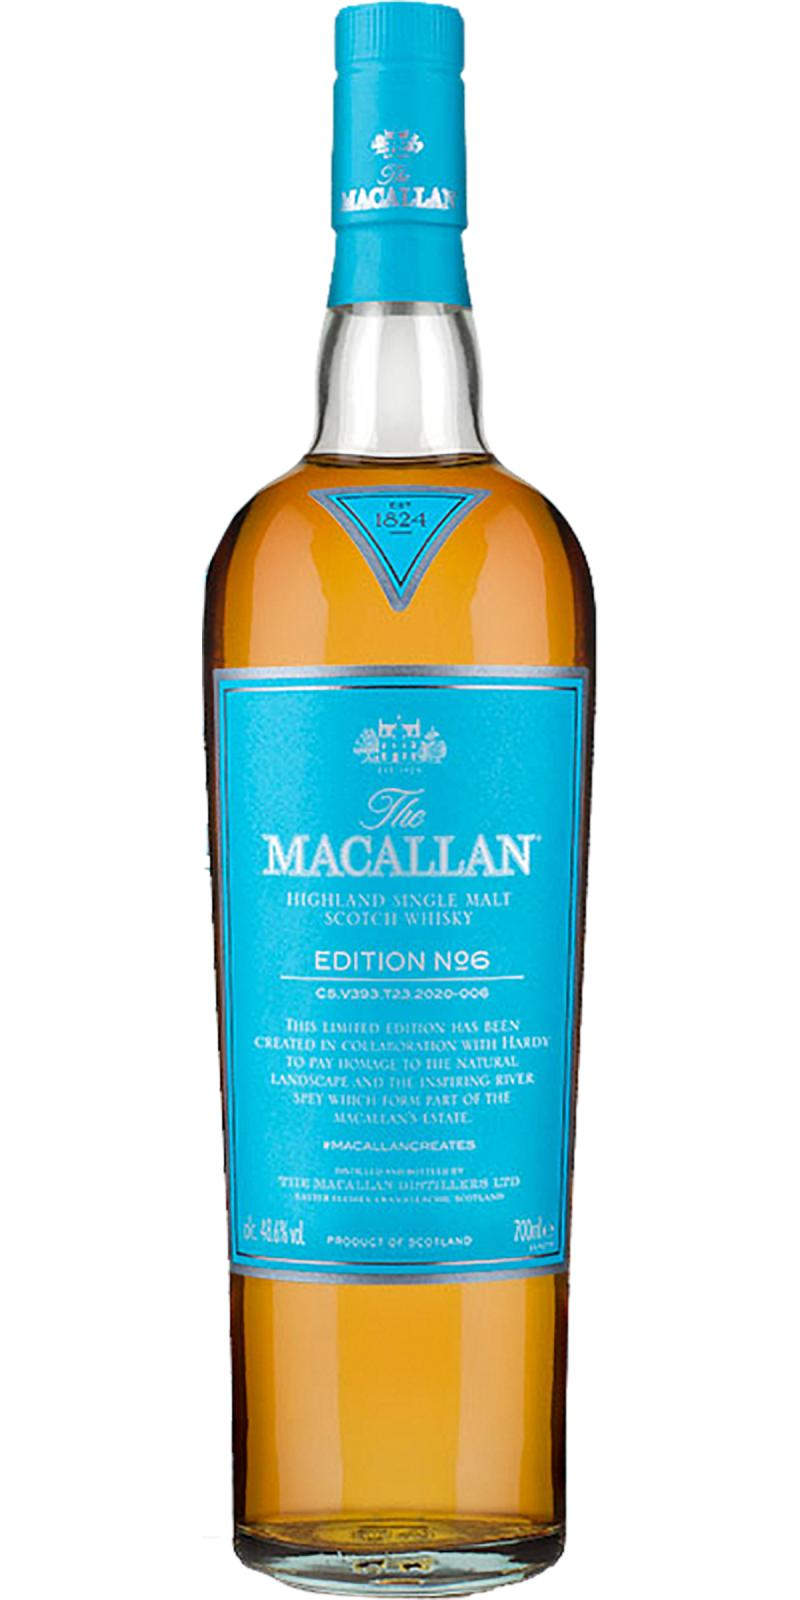 Macallan Edition No. 6